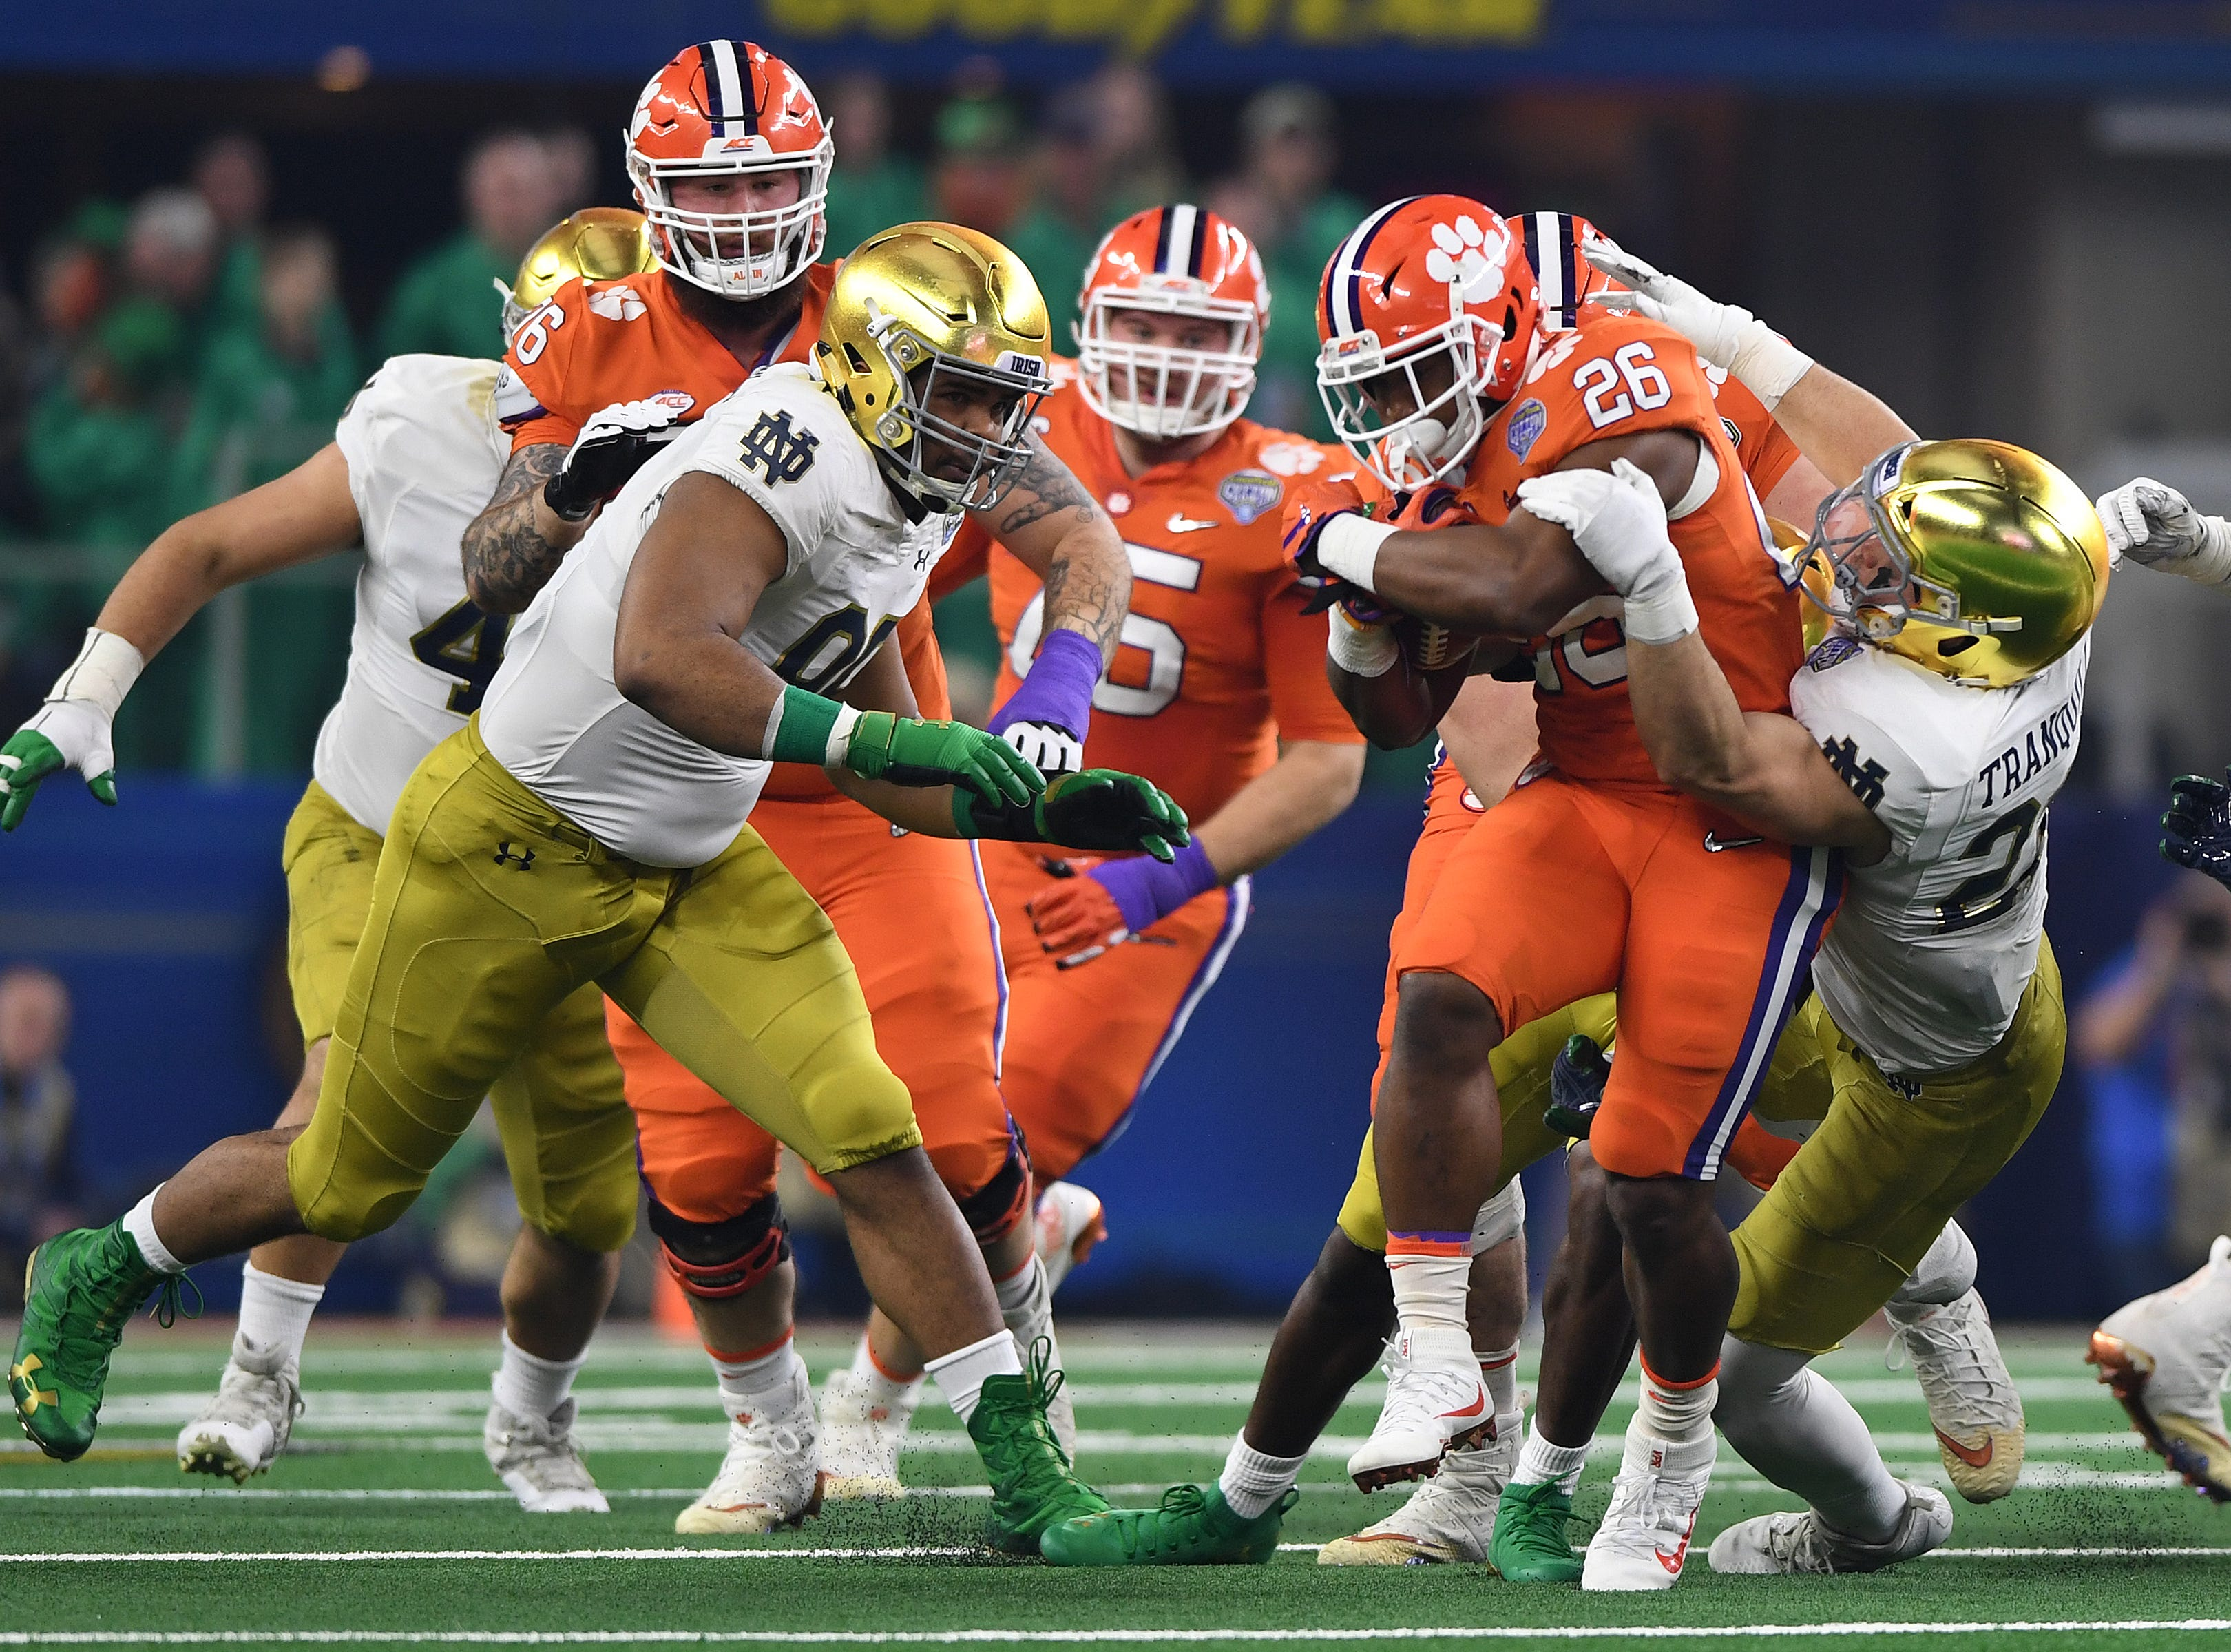 Clemson running back Adam Choice (26) carries against Notre Dame during the 2nd quarter of the Goodyear Cotton Bowl at AT&T stadium in Arlington, TX Saturday, December 29, 2018.